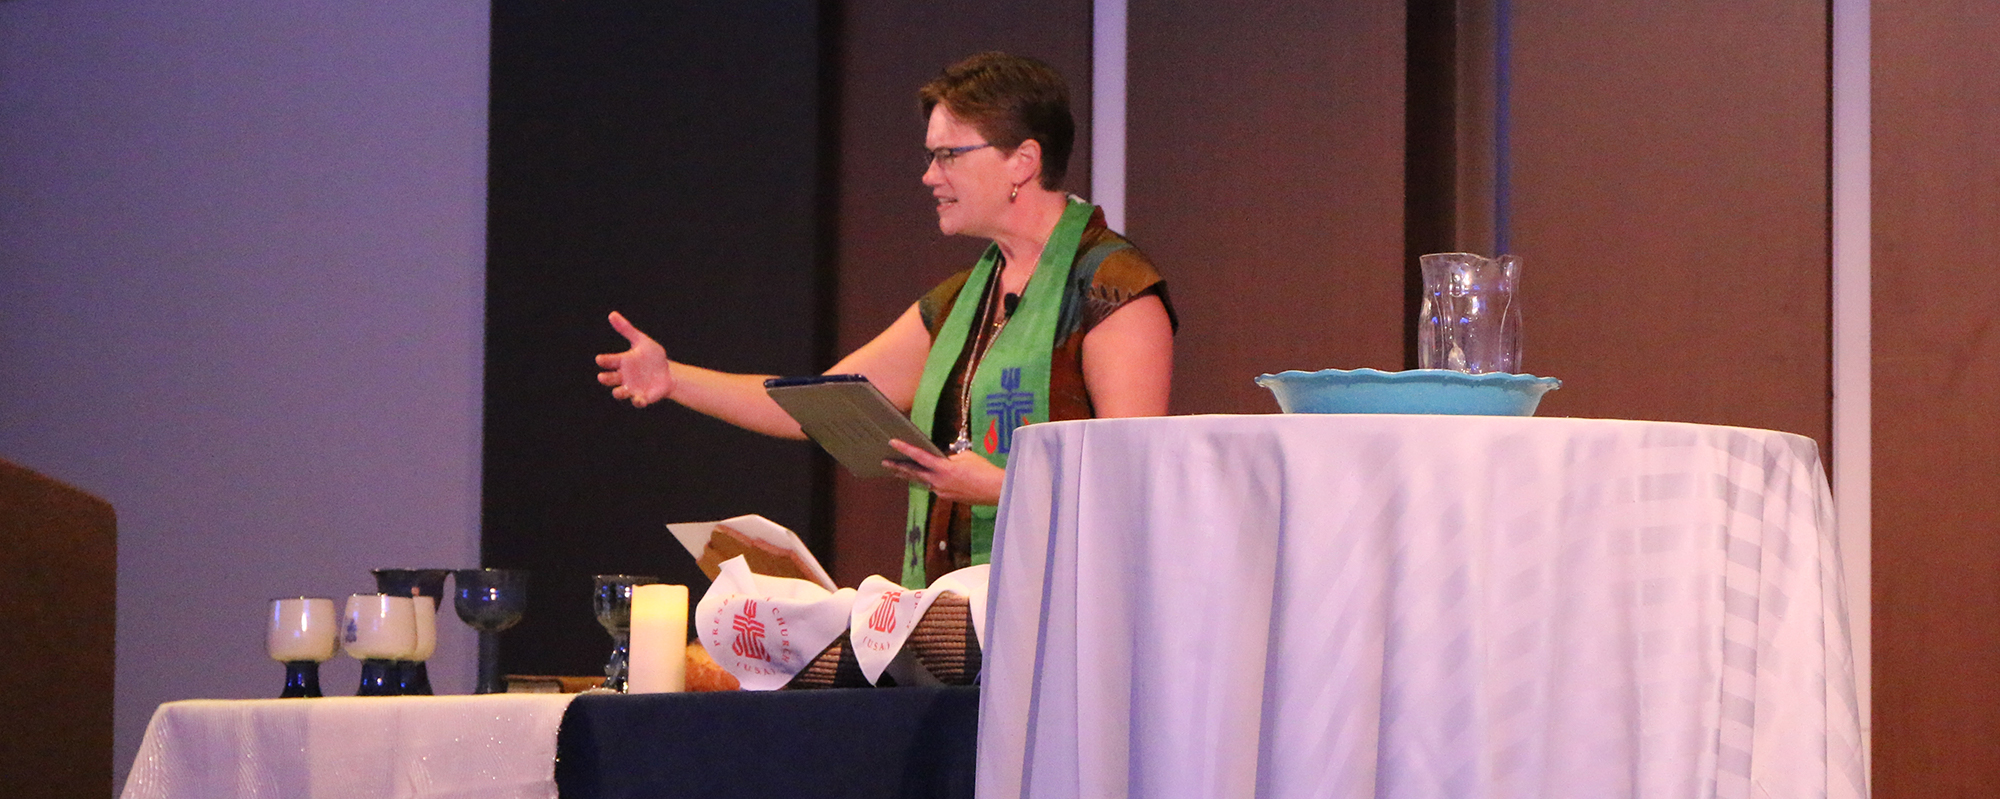 he Rev. Cindy Kohlmann, co-moderator of the 223rd General Assembly, preached during the gathering. Photo by Rick Jones